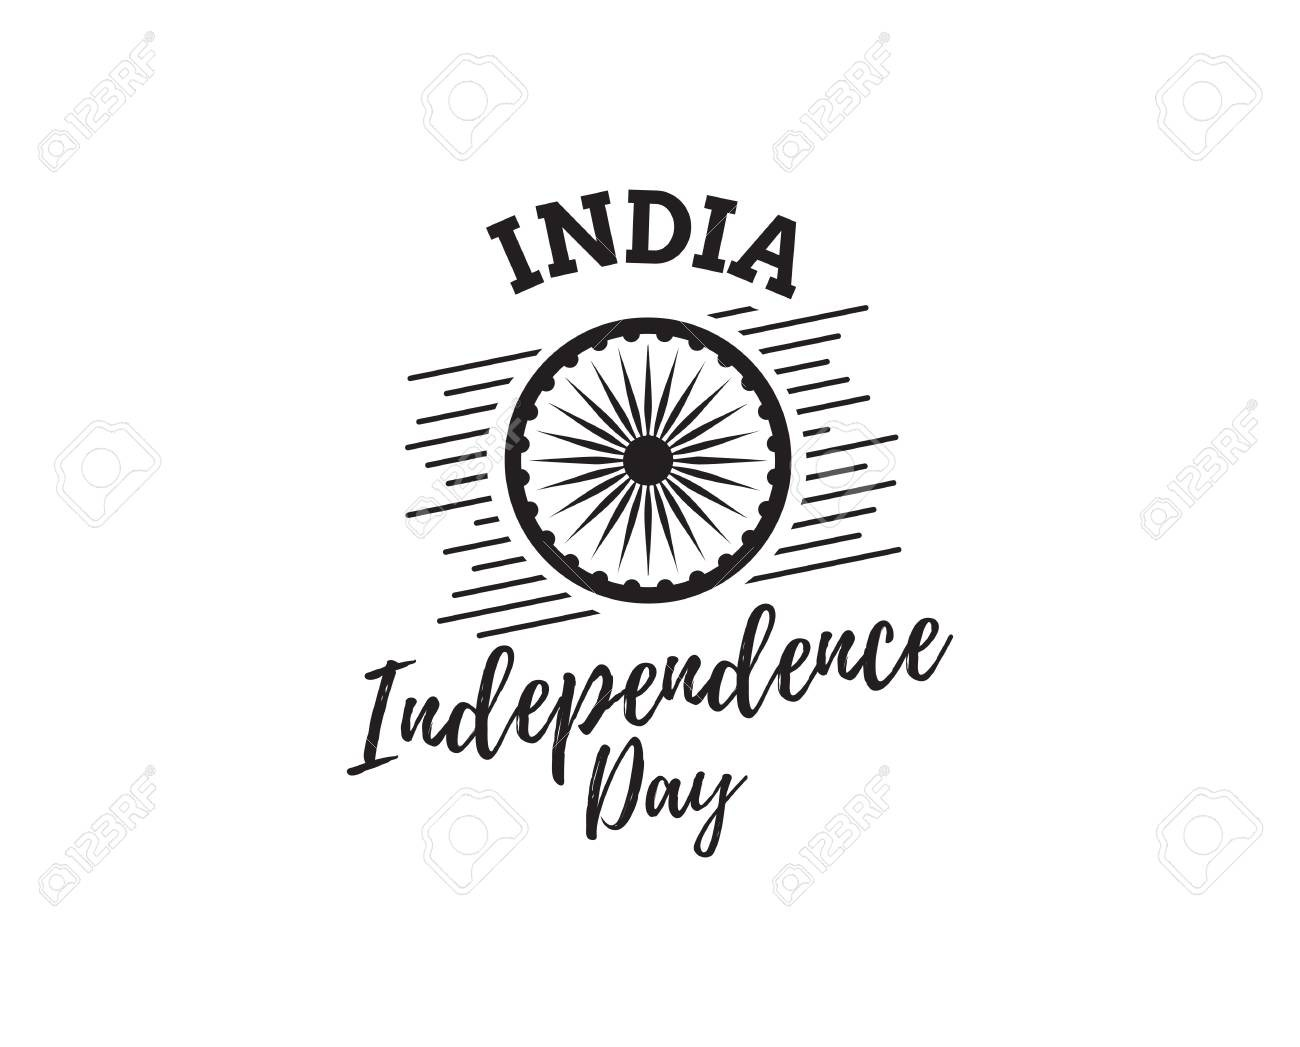 Independence day india clipart black and white jpg download Independence Day Clipart Black And White | salaharness.org jpg download